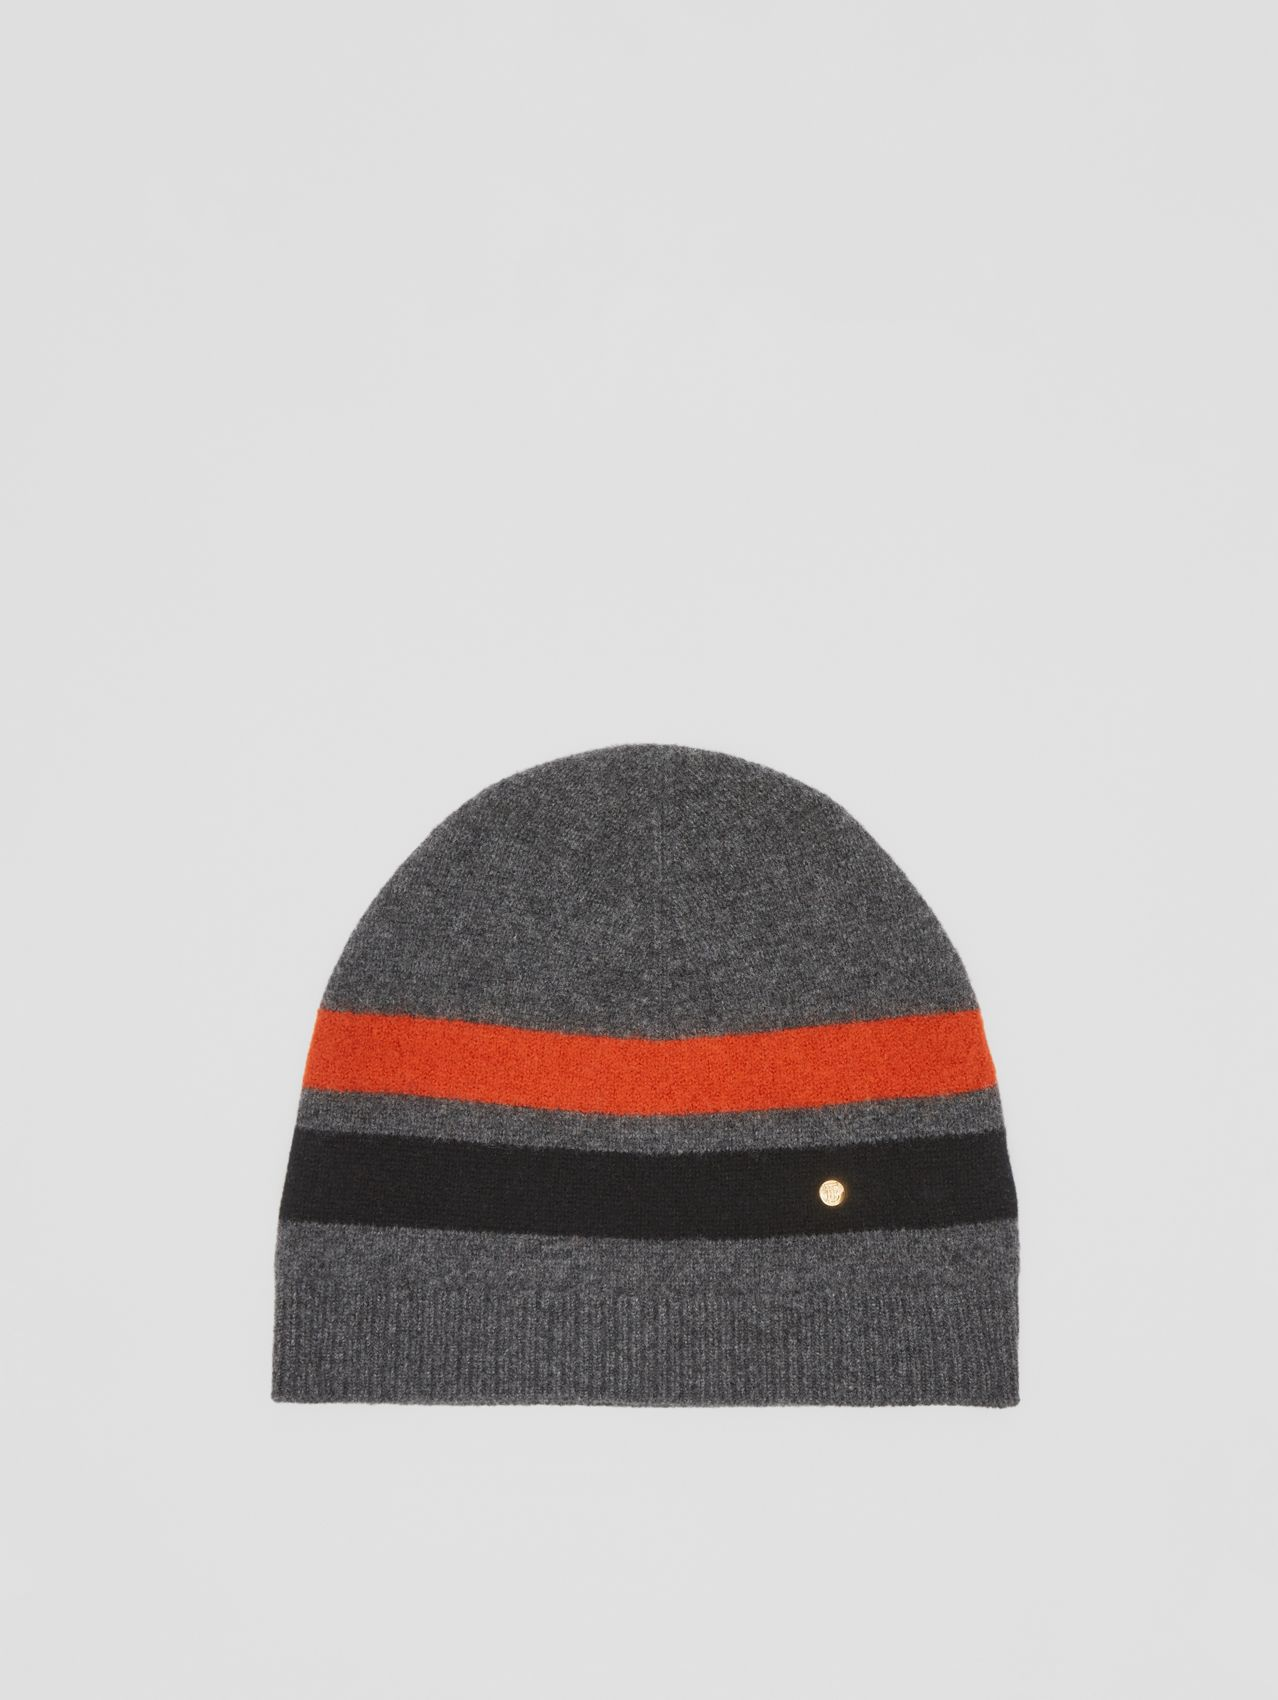 Monogram Motif Merino Wool Cashmere Beanie in Dark Grey